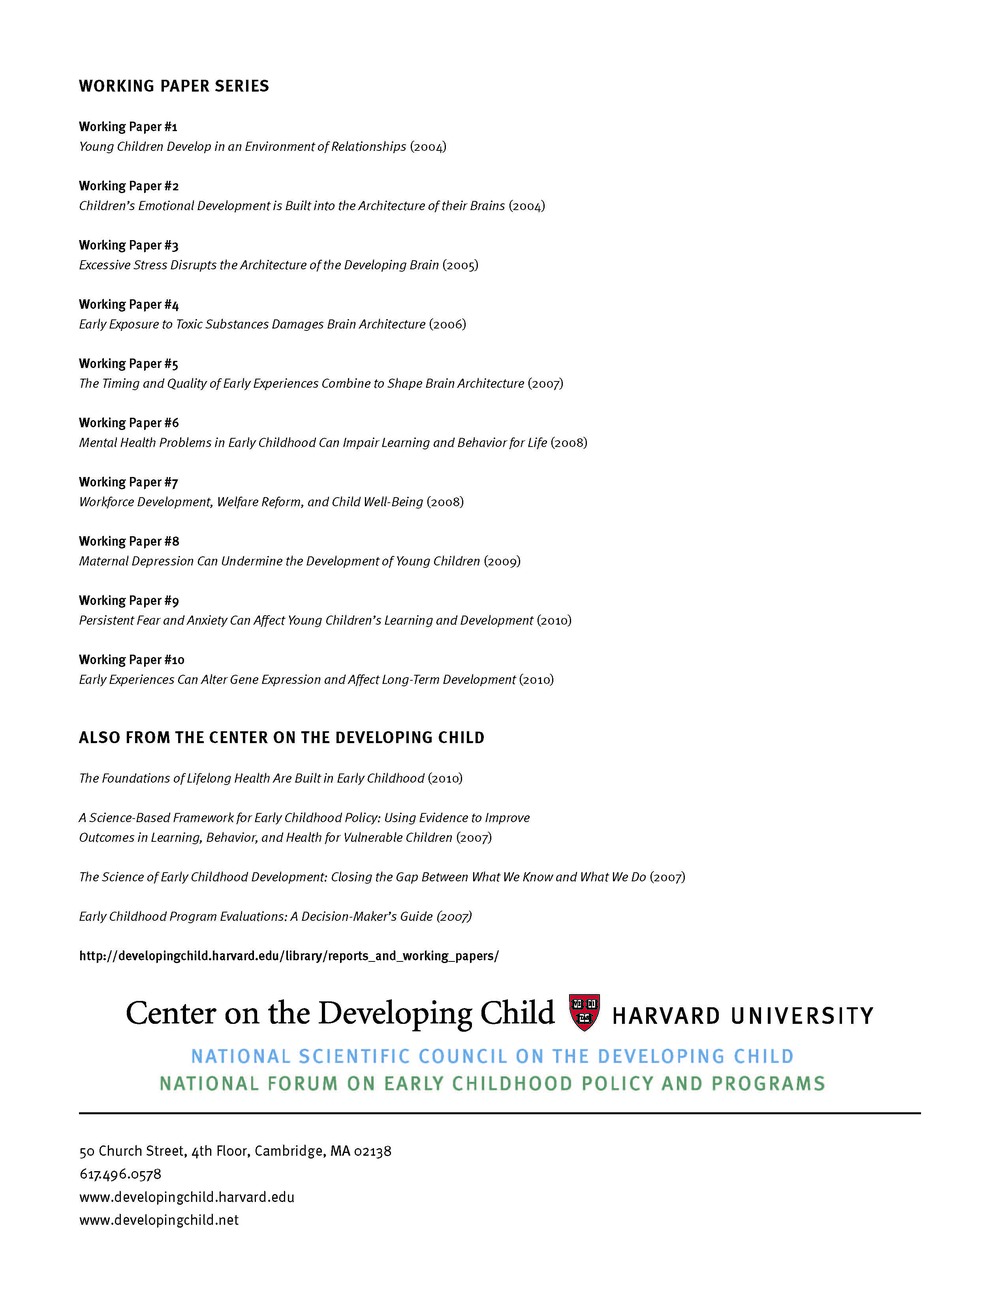 Child's Development Harvard University_Page_20.jpg